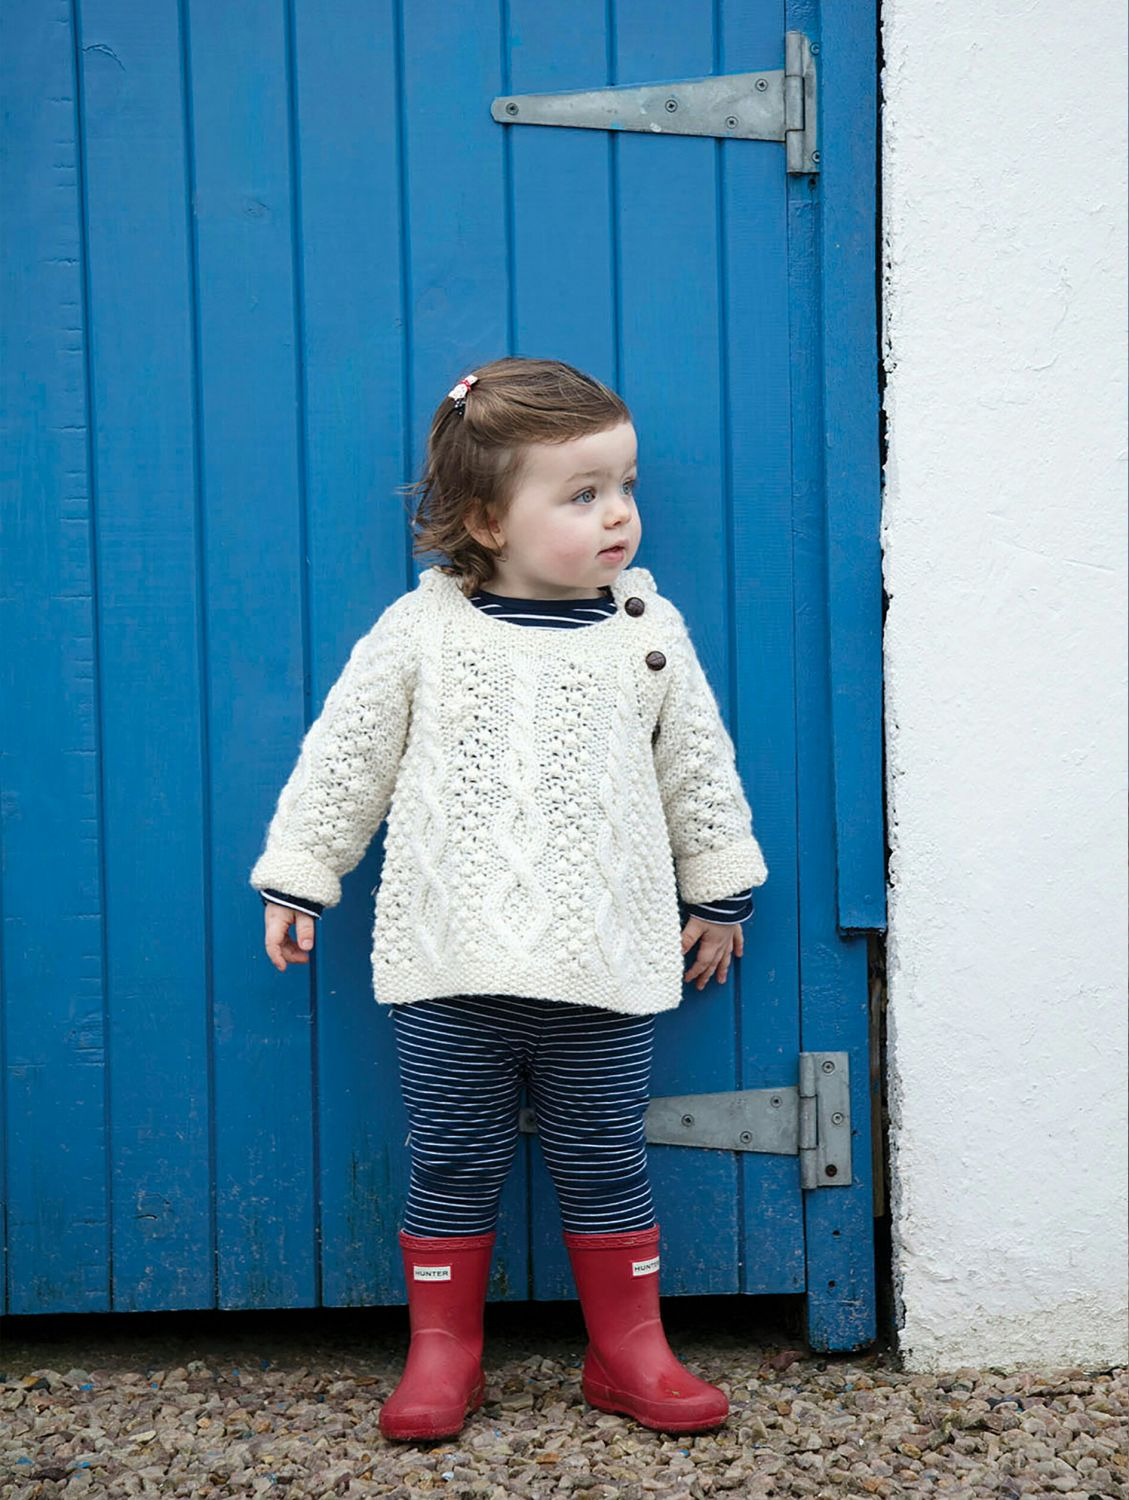 Pixie Style Children's Hand Knit Sweater